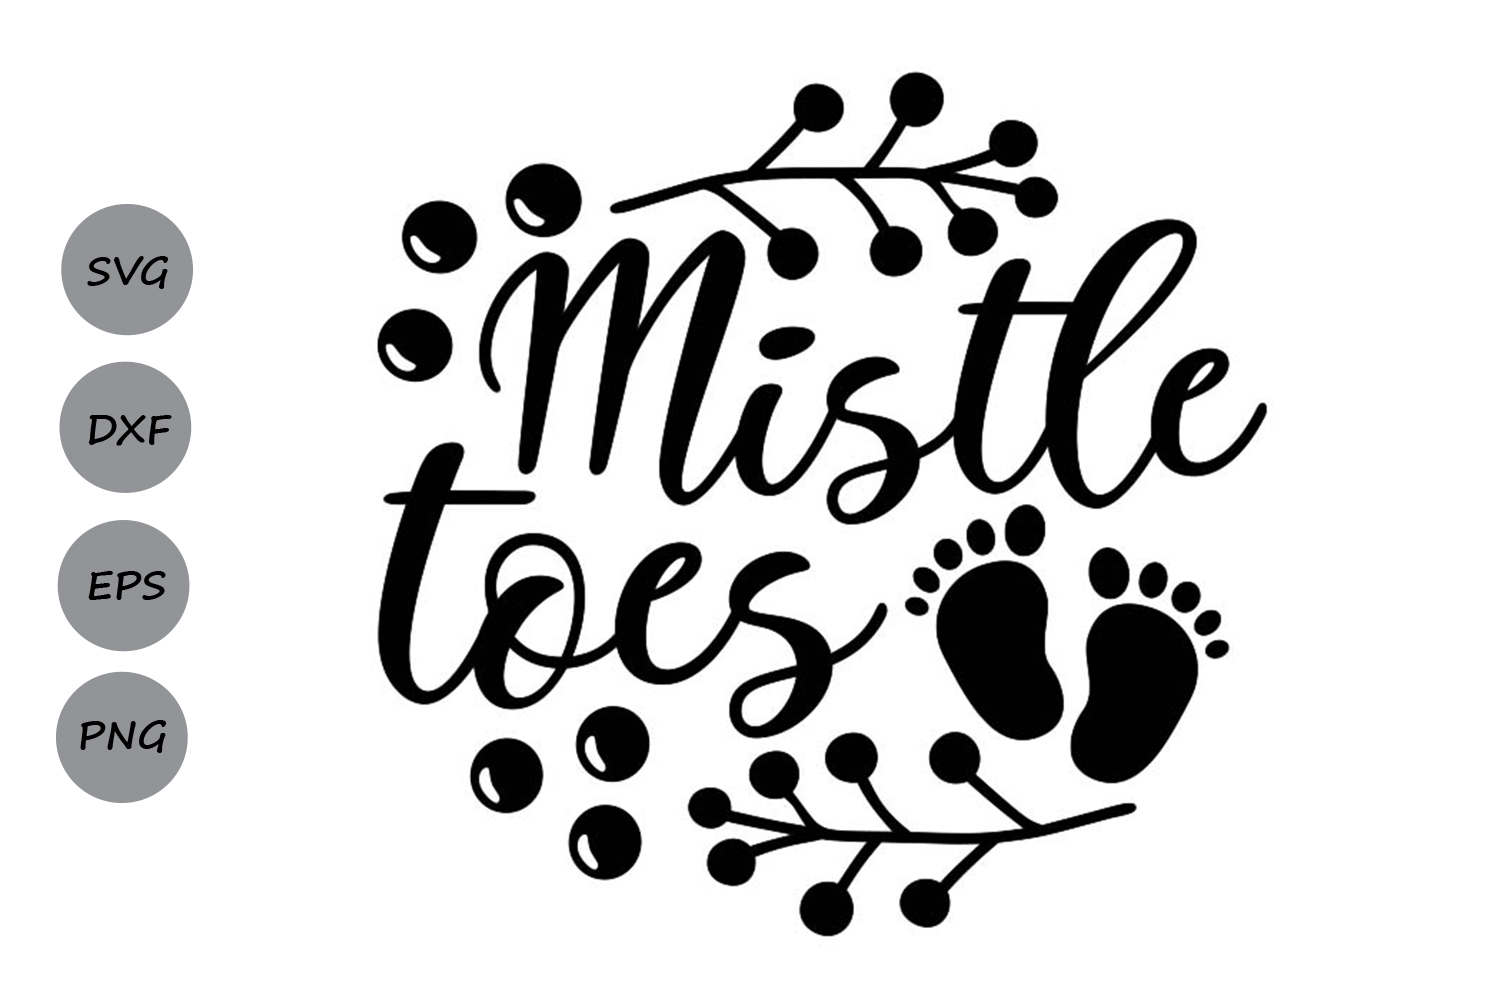 Download Free Mistle Toes Graphic By Cosmosfineart Creative Fabrica for Cricut Explore, Silhouette and other cutting machines.